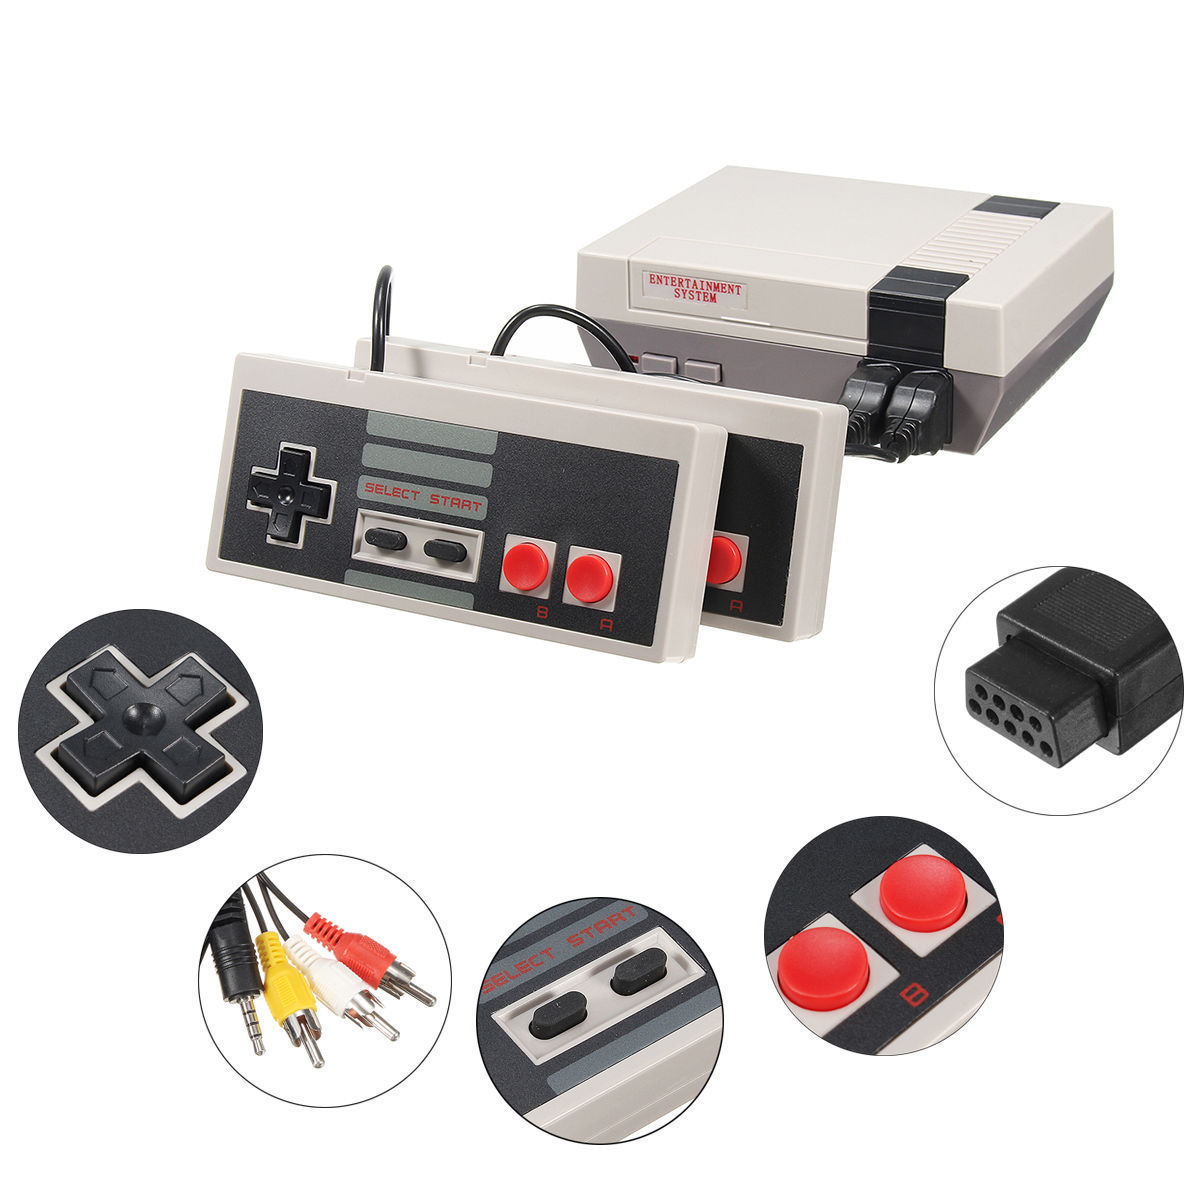 Retro NES Classic Style Video Game Console and 50 similar items